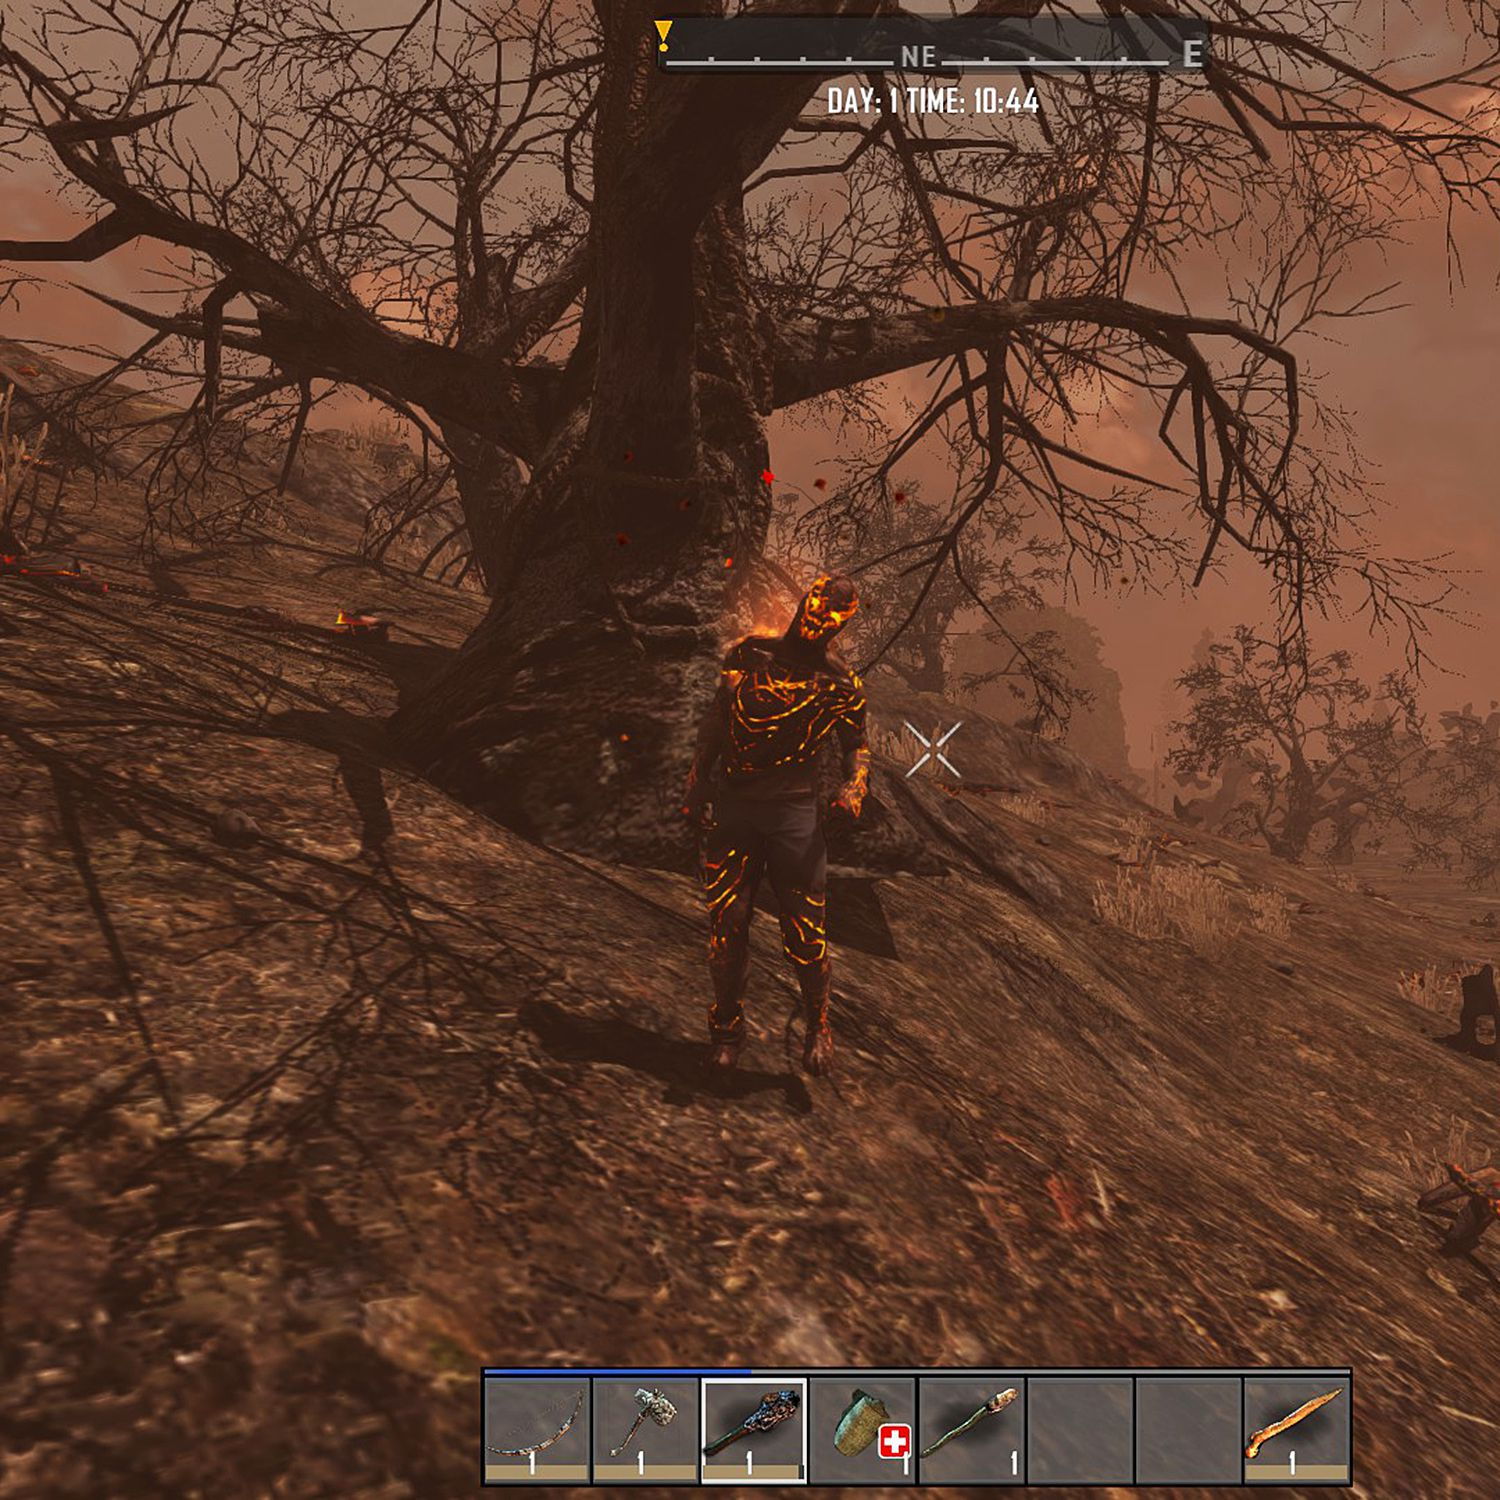 7 Days To Die Review Giving Zombies A Fun Facelift 7 Days And One Sandbox Platform At A Time